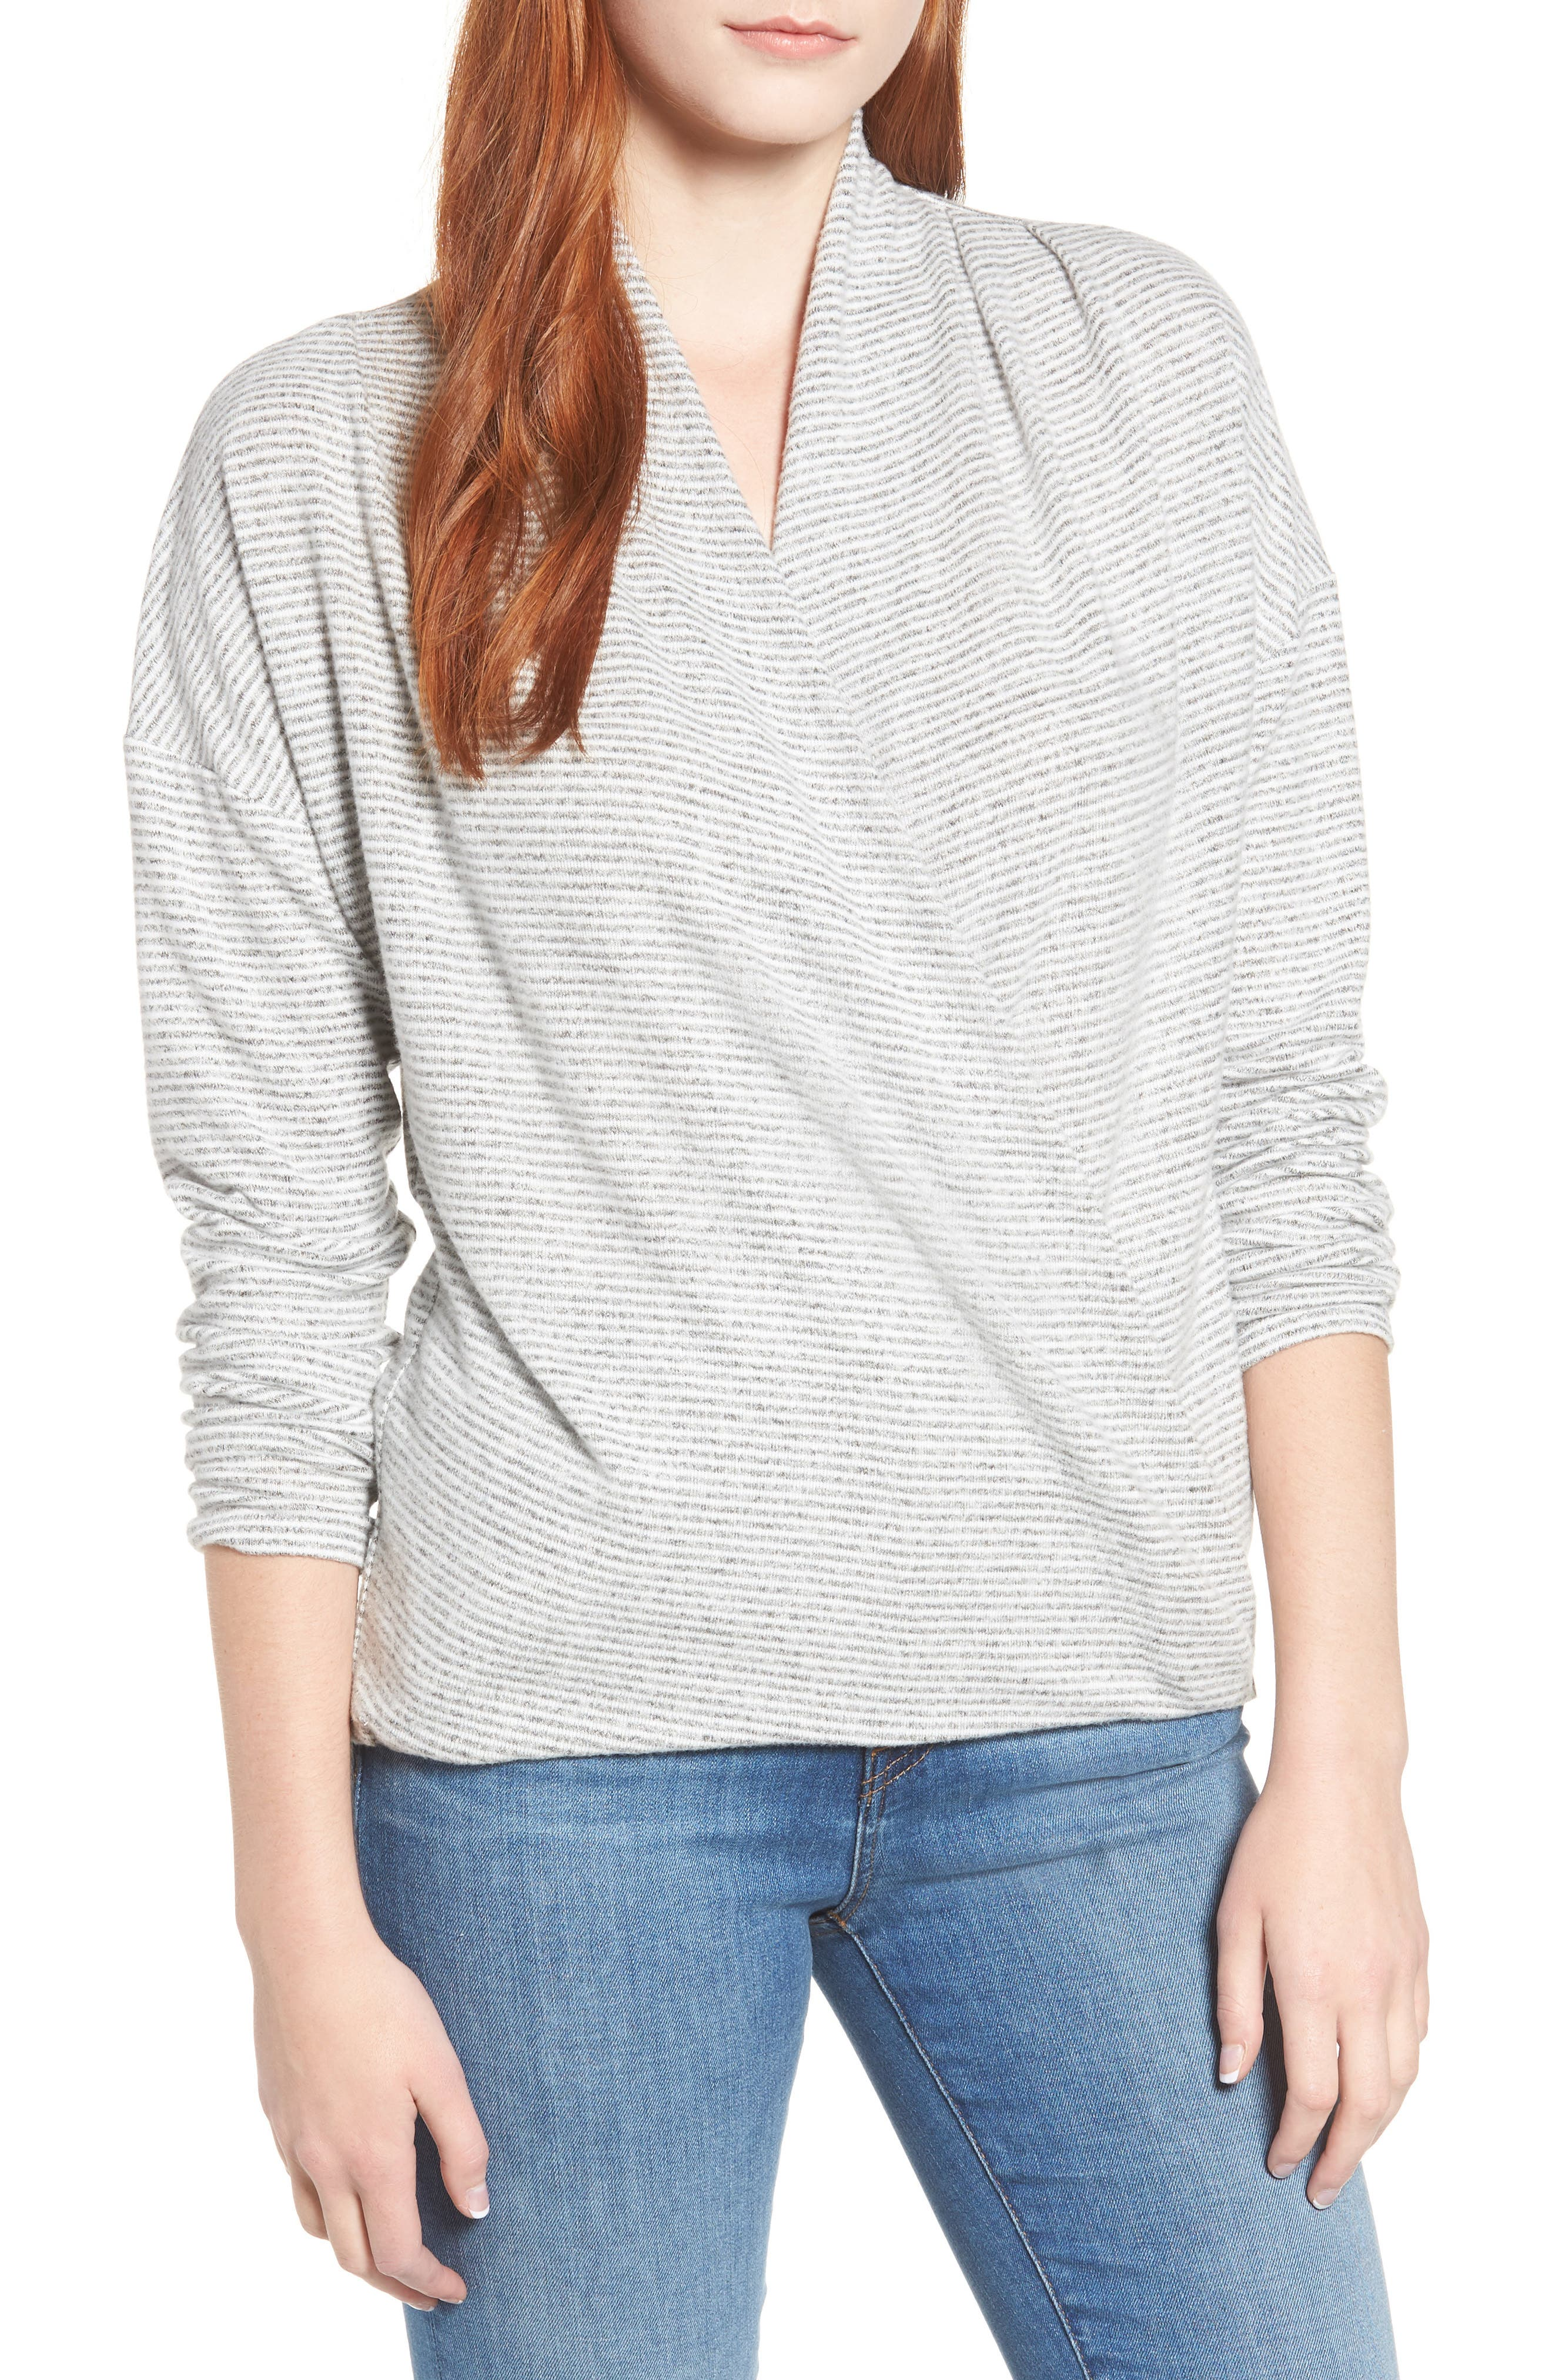 GIBSON,                             x Living in Yellow Diana Cozy Knit Wrap Top,                             Main thumbnail 1, color,                             GREY/ IVORY